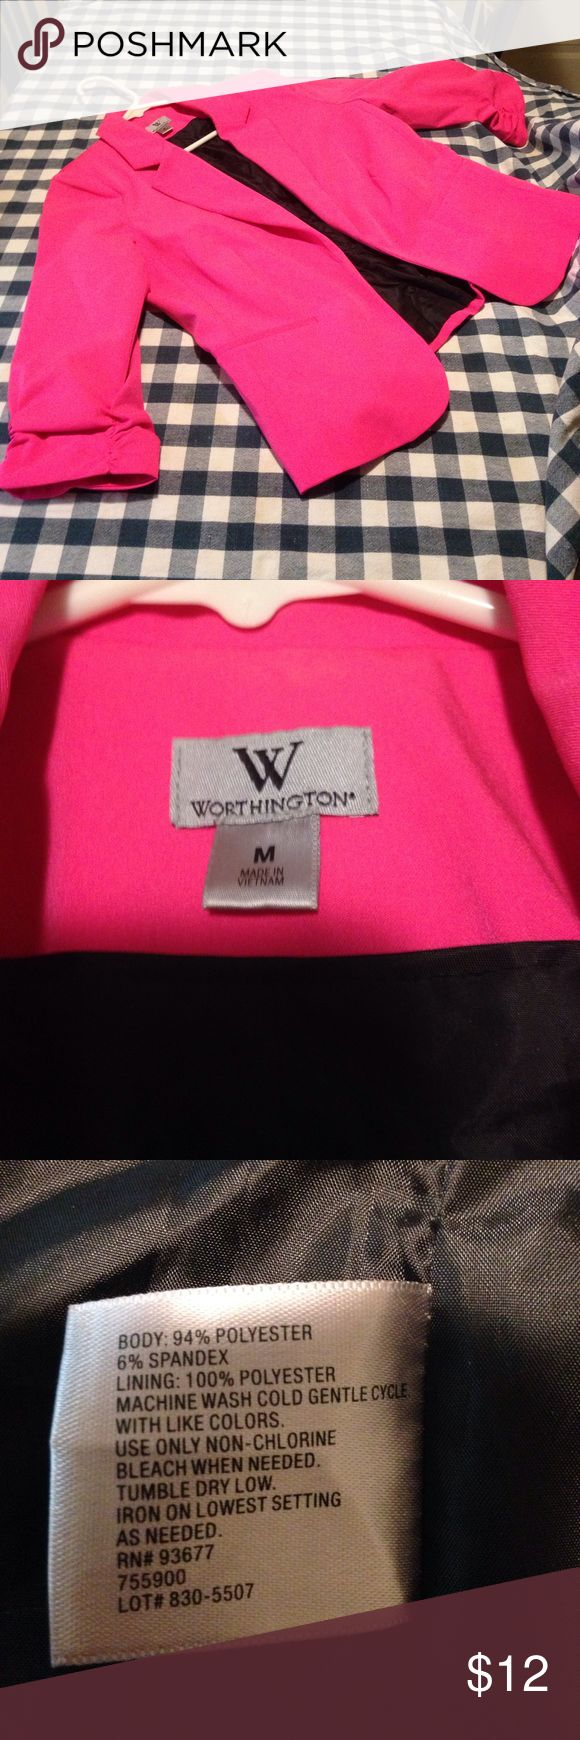 Worthington HOT Pink Blazer - Size M Stunningly sexy hot pink blazer with cinched sleeves and black lining. Would go great with a striped/polka dot shirt and some sleek skinny jeans with heels. Bought from fellow posher, but it didn't fit. Says Medium, but fits smaller. Adorable! Wish I could keep! Worthington Jackets & Coats Blazers